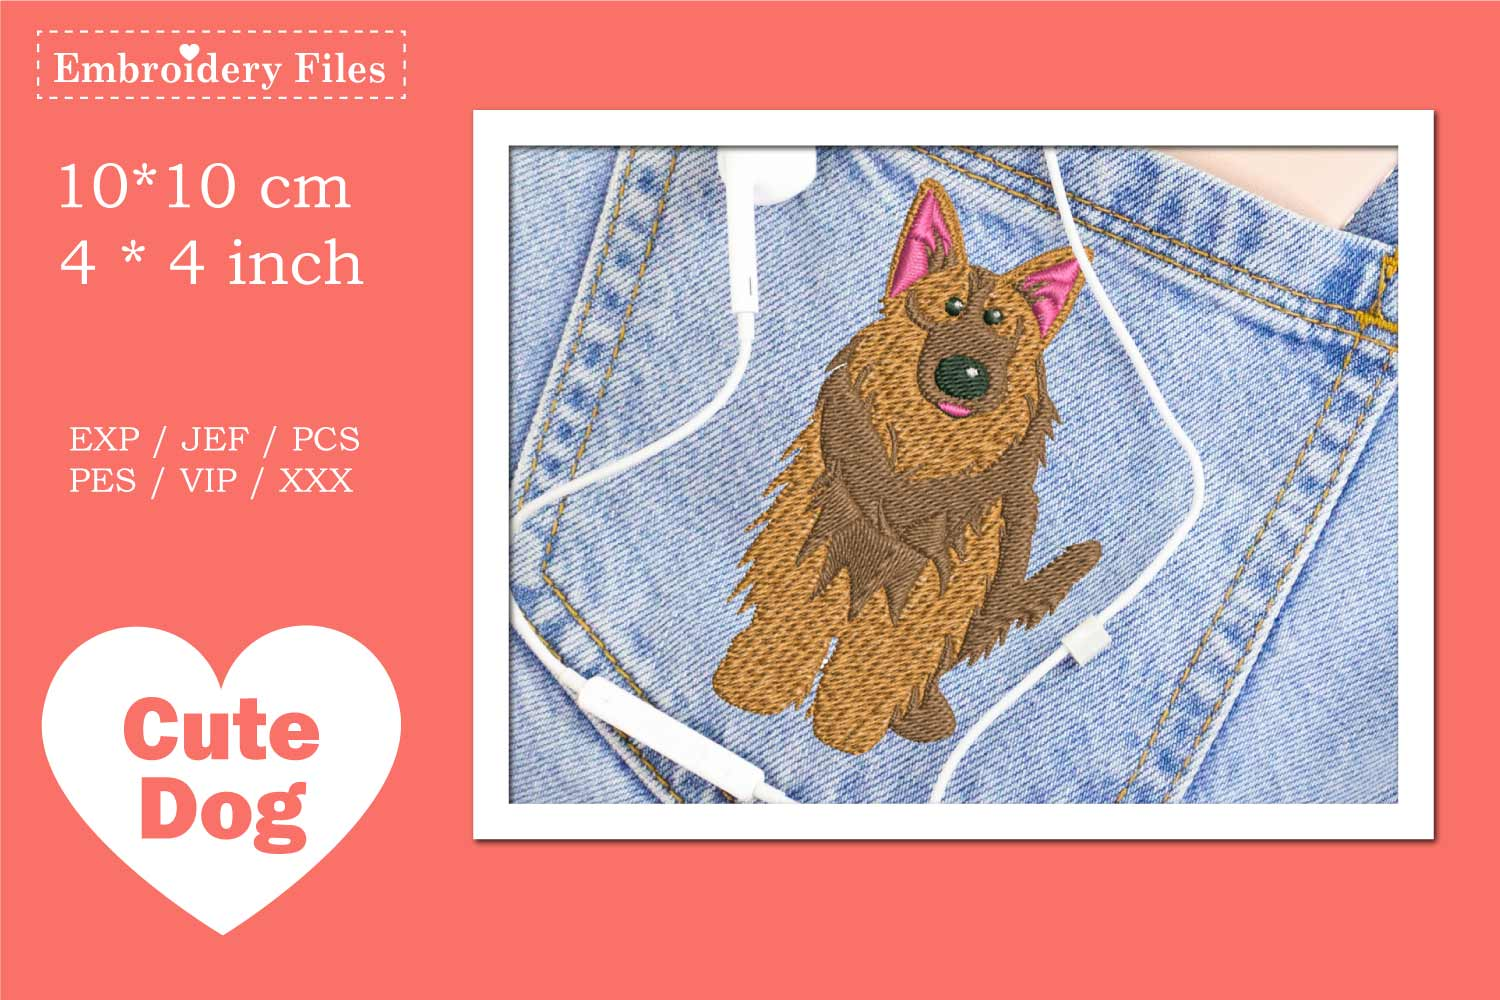 Cute Shepherd Dog - Embroidery File example image 2